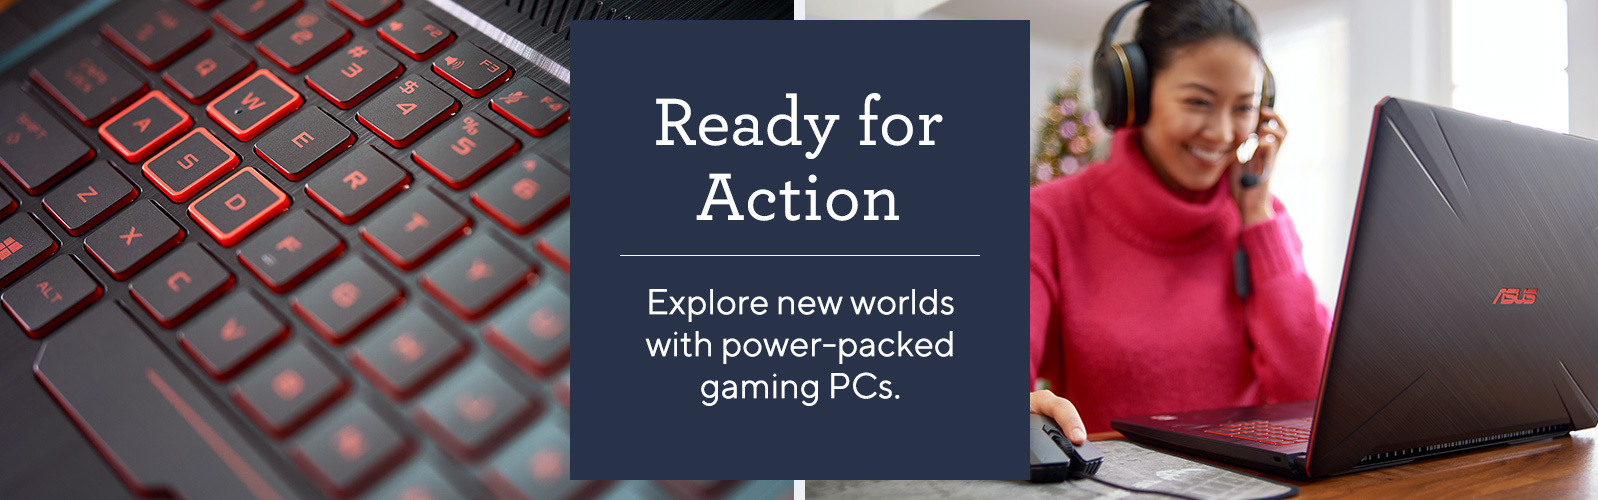 Gaming Pcs Computers Electronics Qvc Com